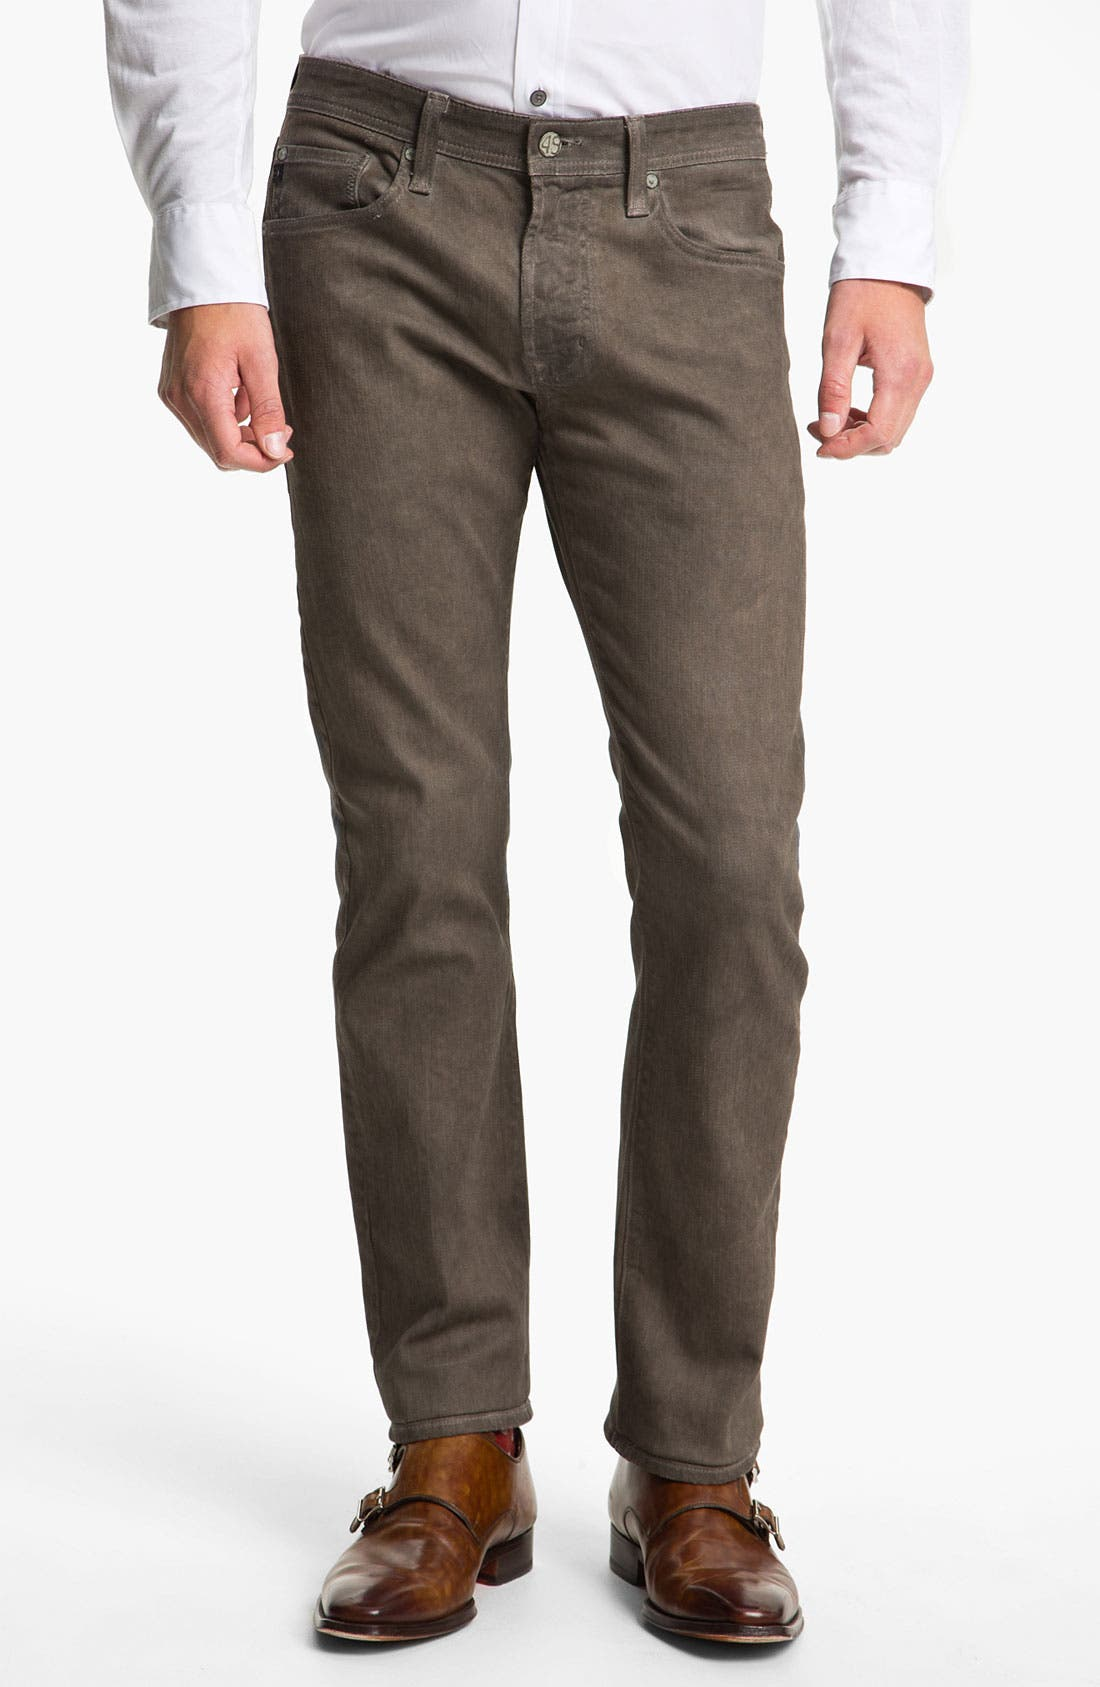 Alternate Image 1 Selected - AG Jeans 'Matchbox' Slim Straight Leg Jeans (Brown Wave)